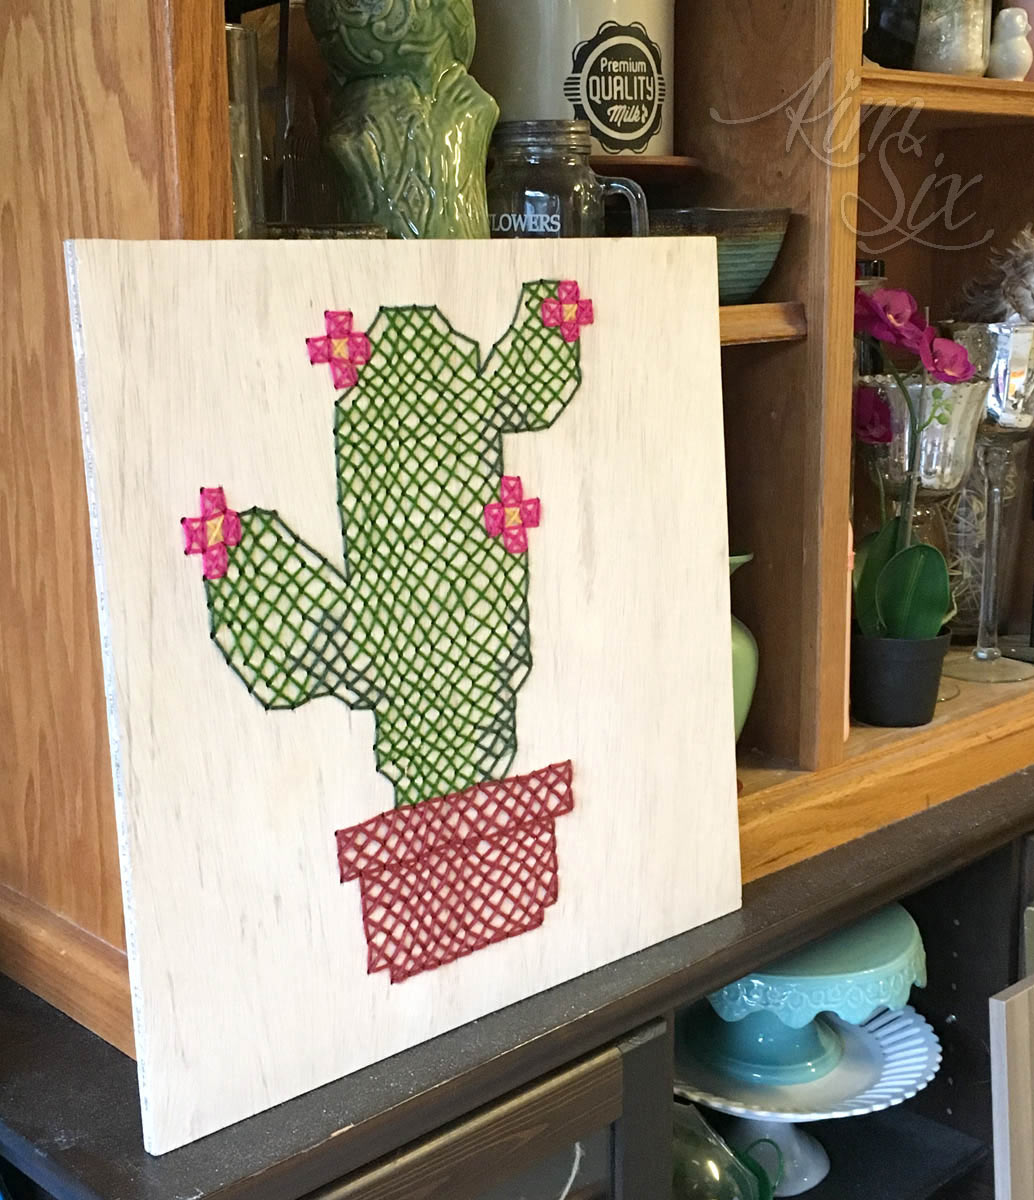 Cross stitched plywood board